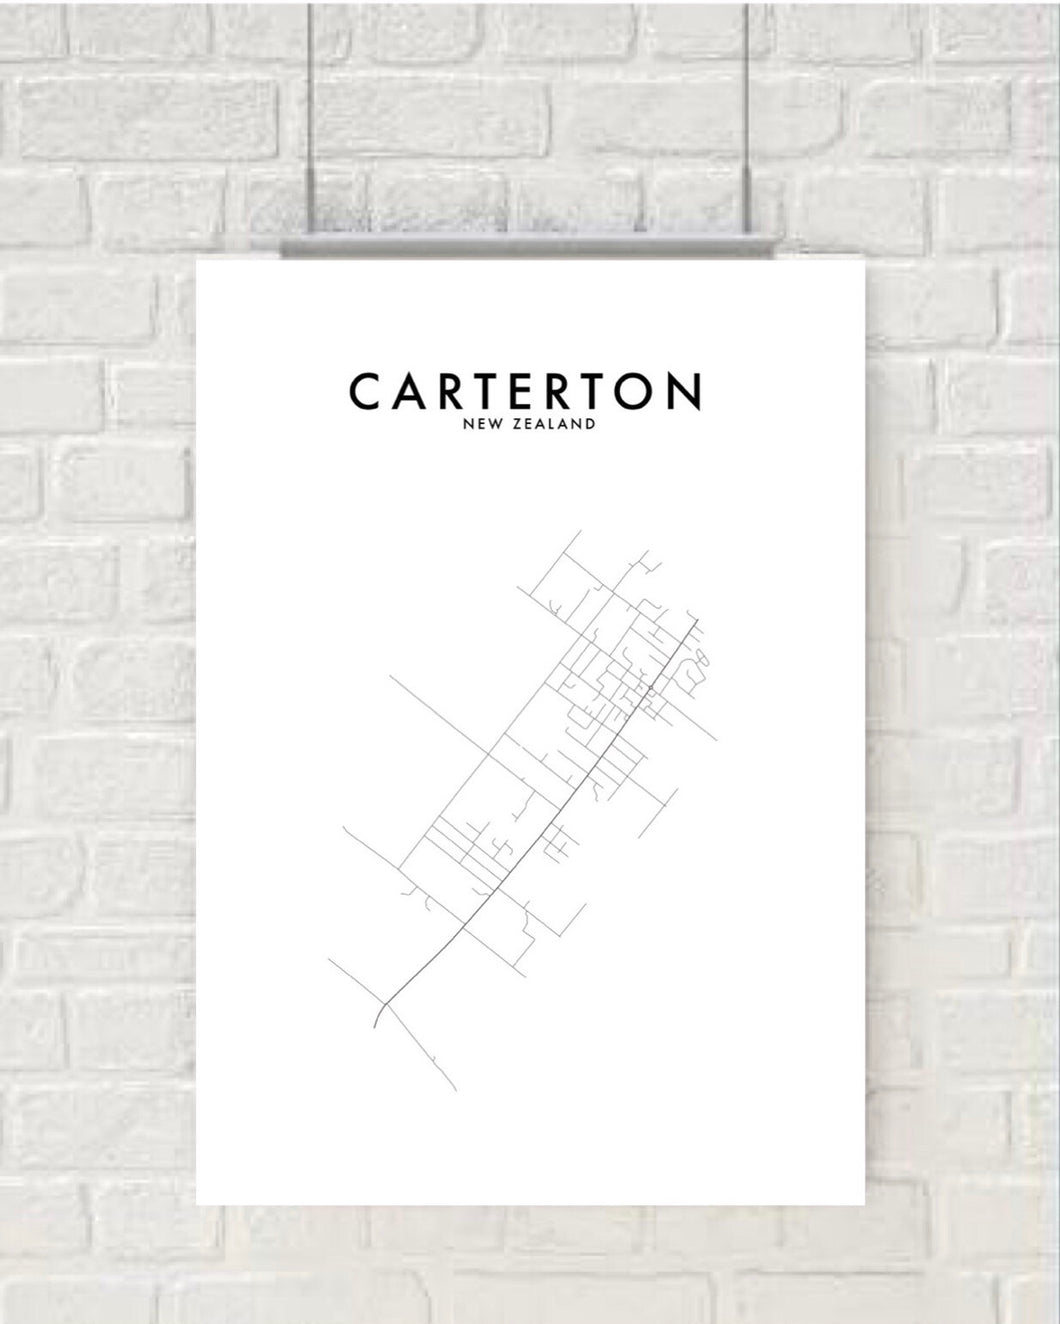 CARTERTON HOMETOWN PRINT